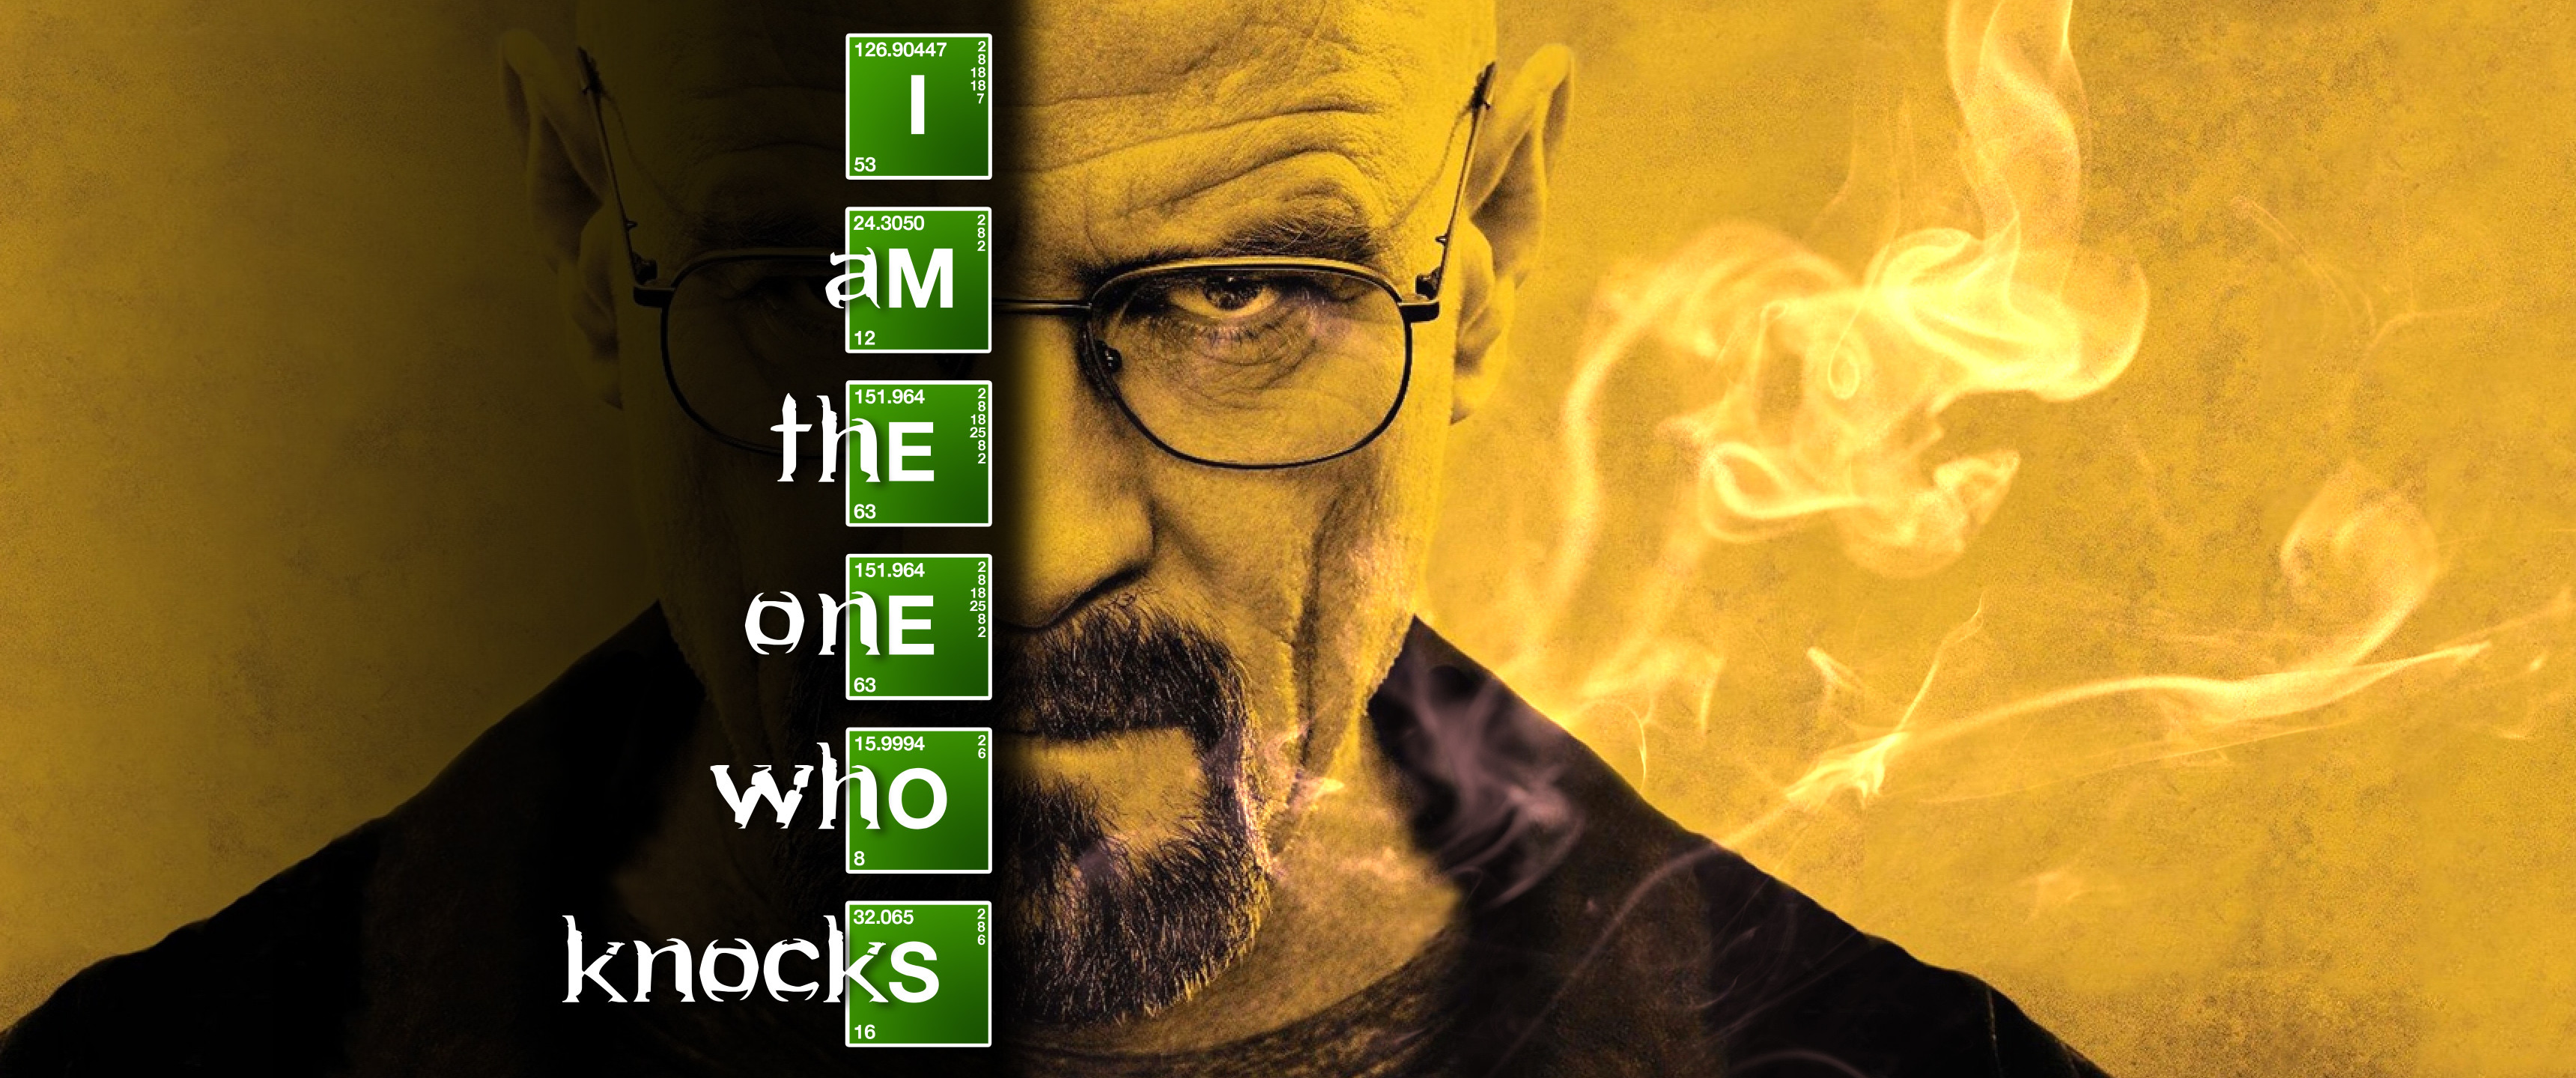 3440x1440 Breaking Bad Wallpaper I made [3440×1440] ...